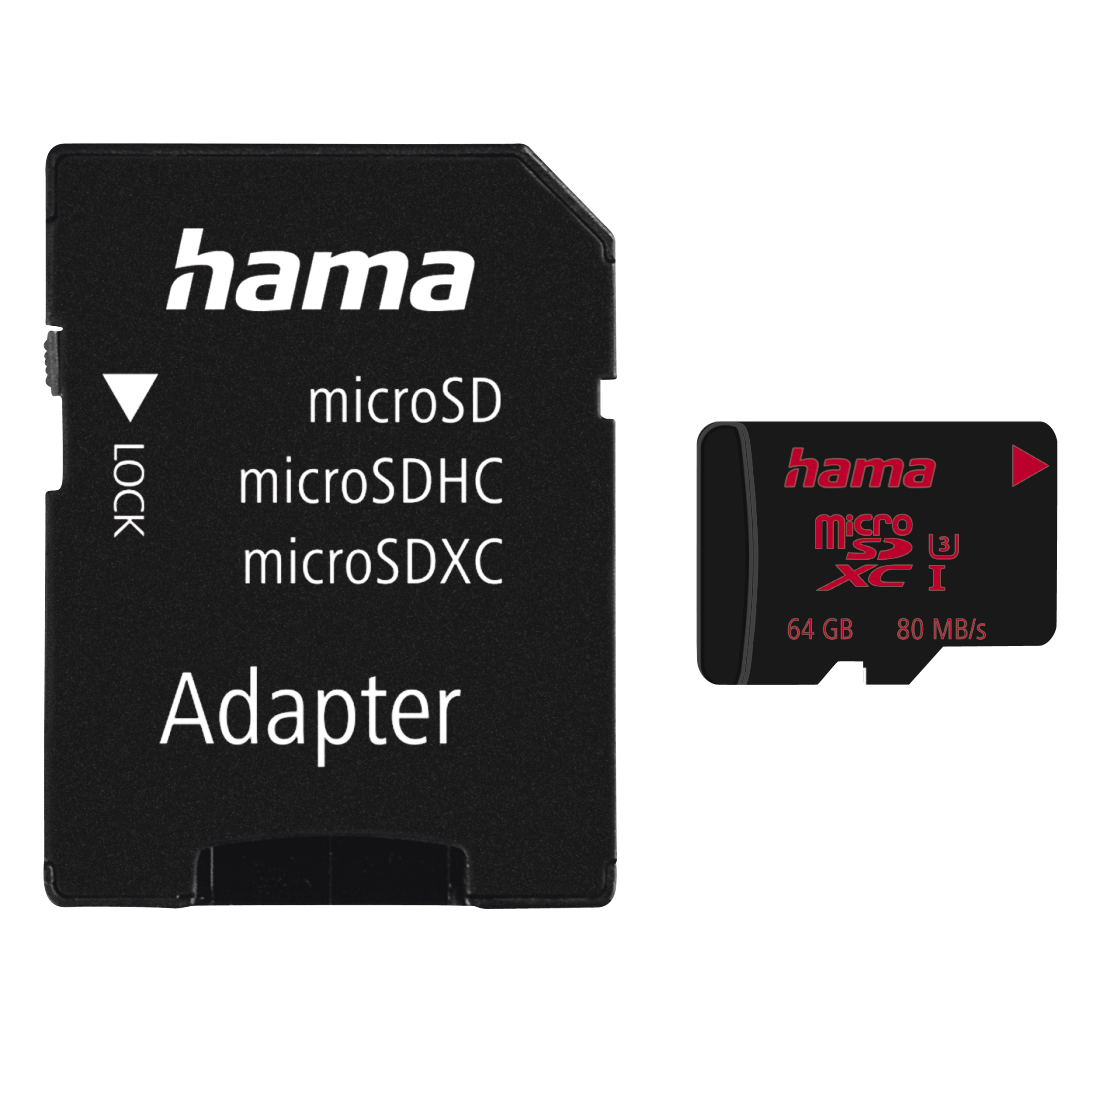 abx High-Res Image - Hama, Carte microSDXC 64GB UHS Speed Class 3 UHS-I 80MB/s + adapt./photo